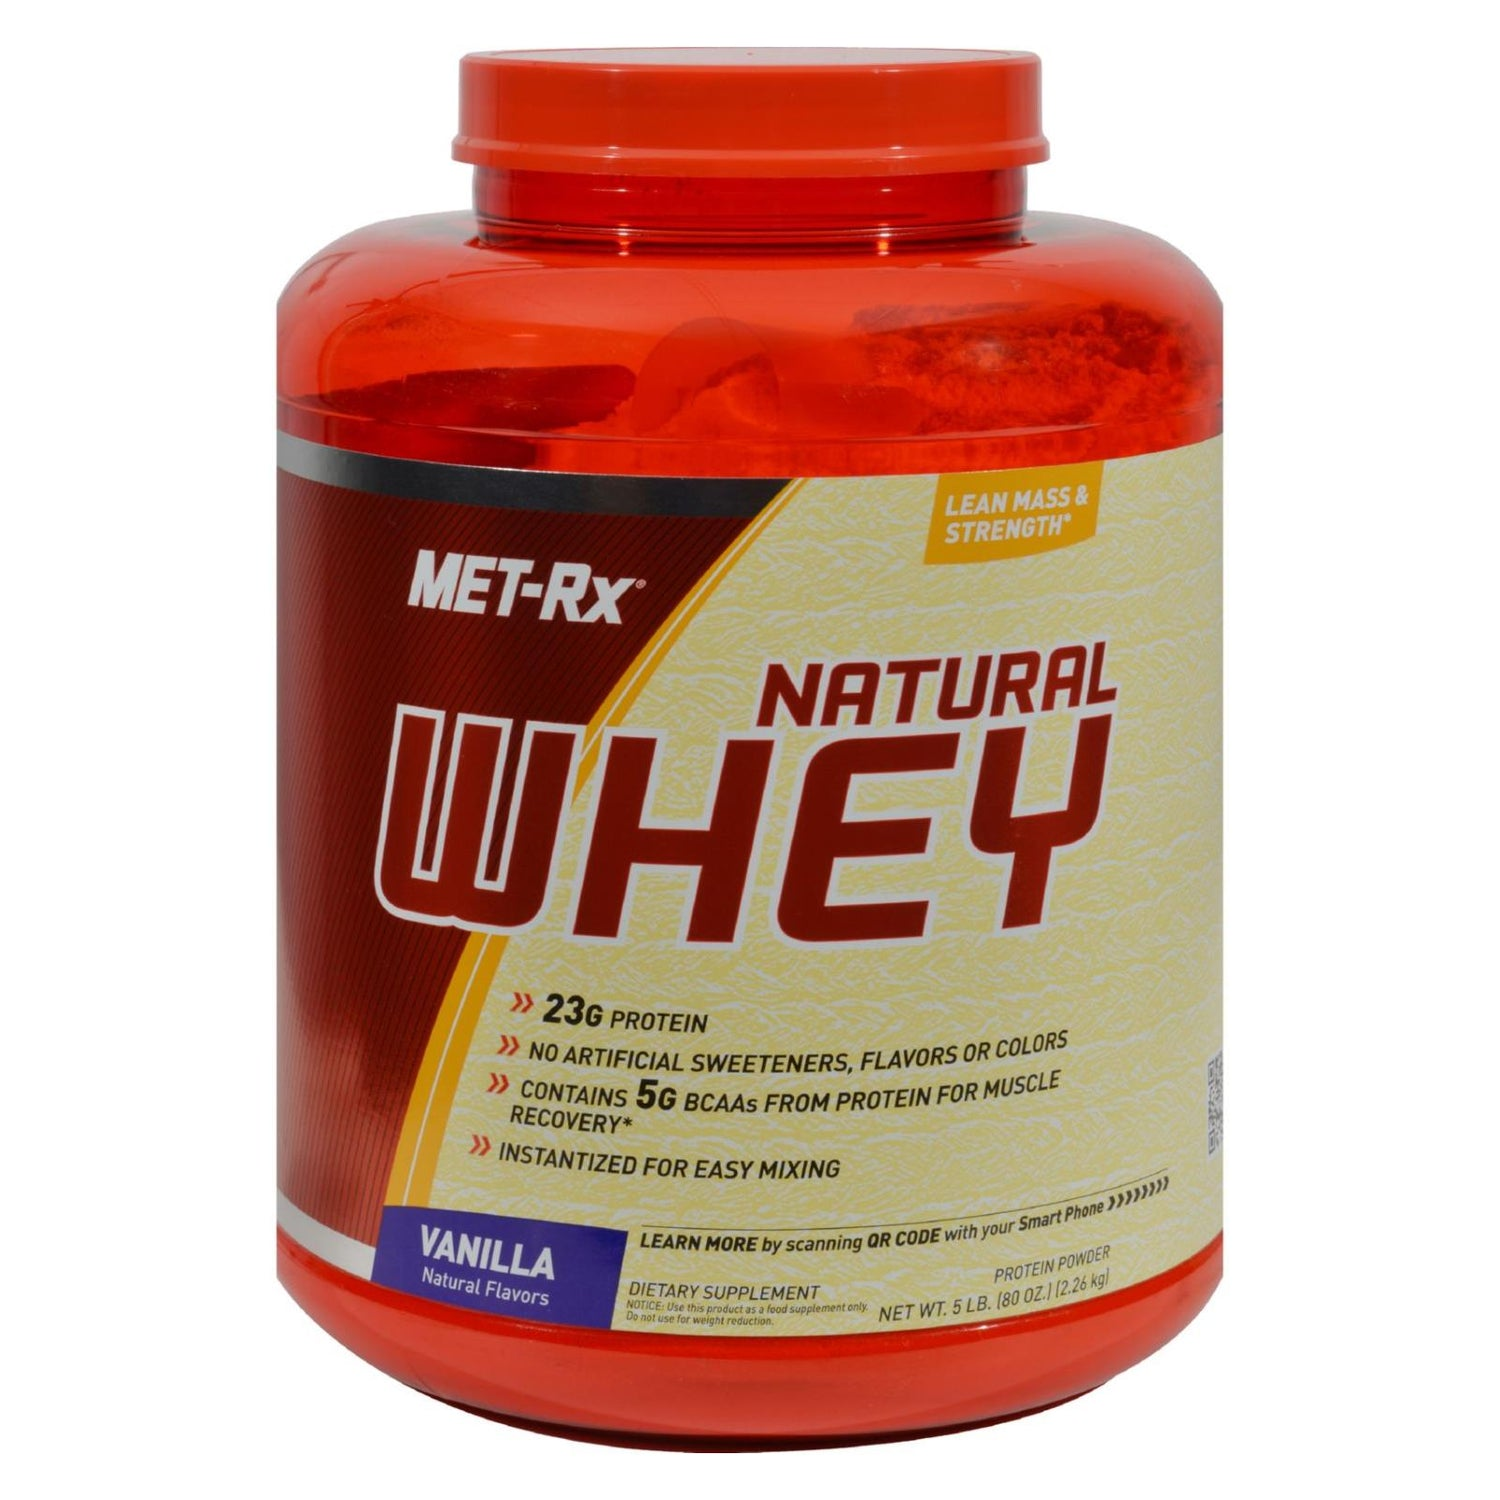 Met-rx Instantized 100% Natural Whey Powder Vanilla - 5 Lbs